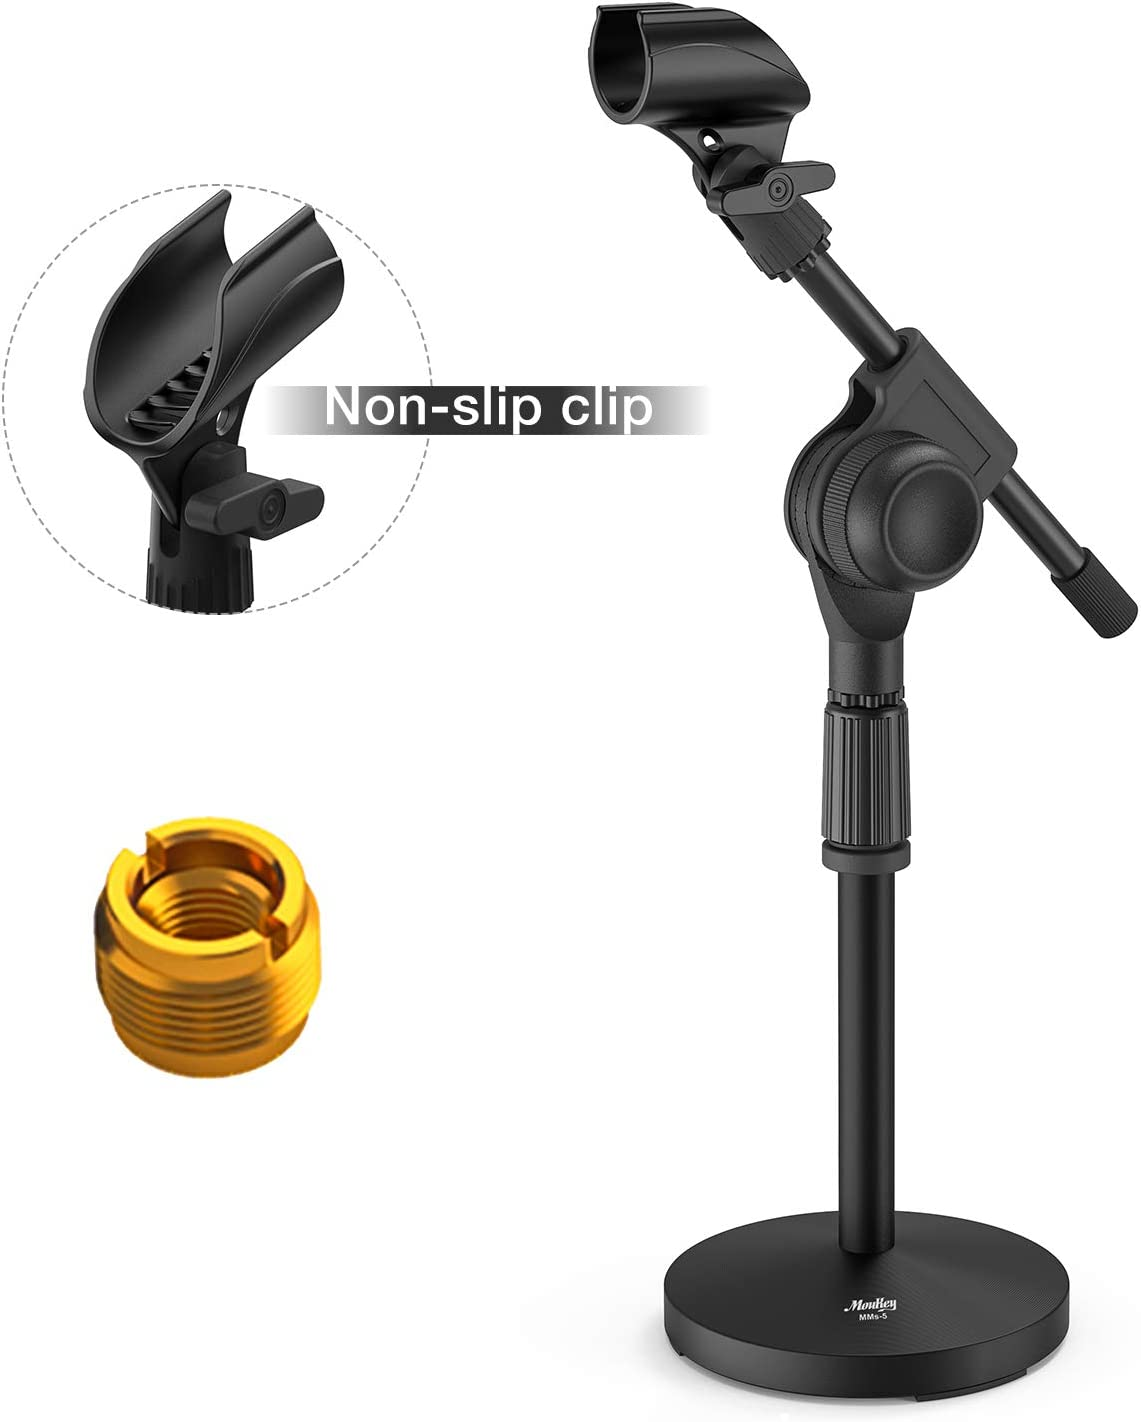 "Moukey MMS-5 Adjustable Desk Mic Stand Desktop Tabletop Table Top Short Microphone Stand with Gear Fixing, Boom arm, 3/8"" and 5/8"" Adapter; Base Dimensions - 5.5 inch Diameter"